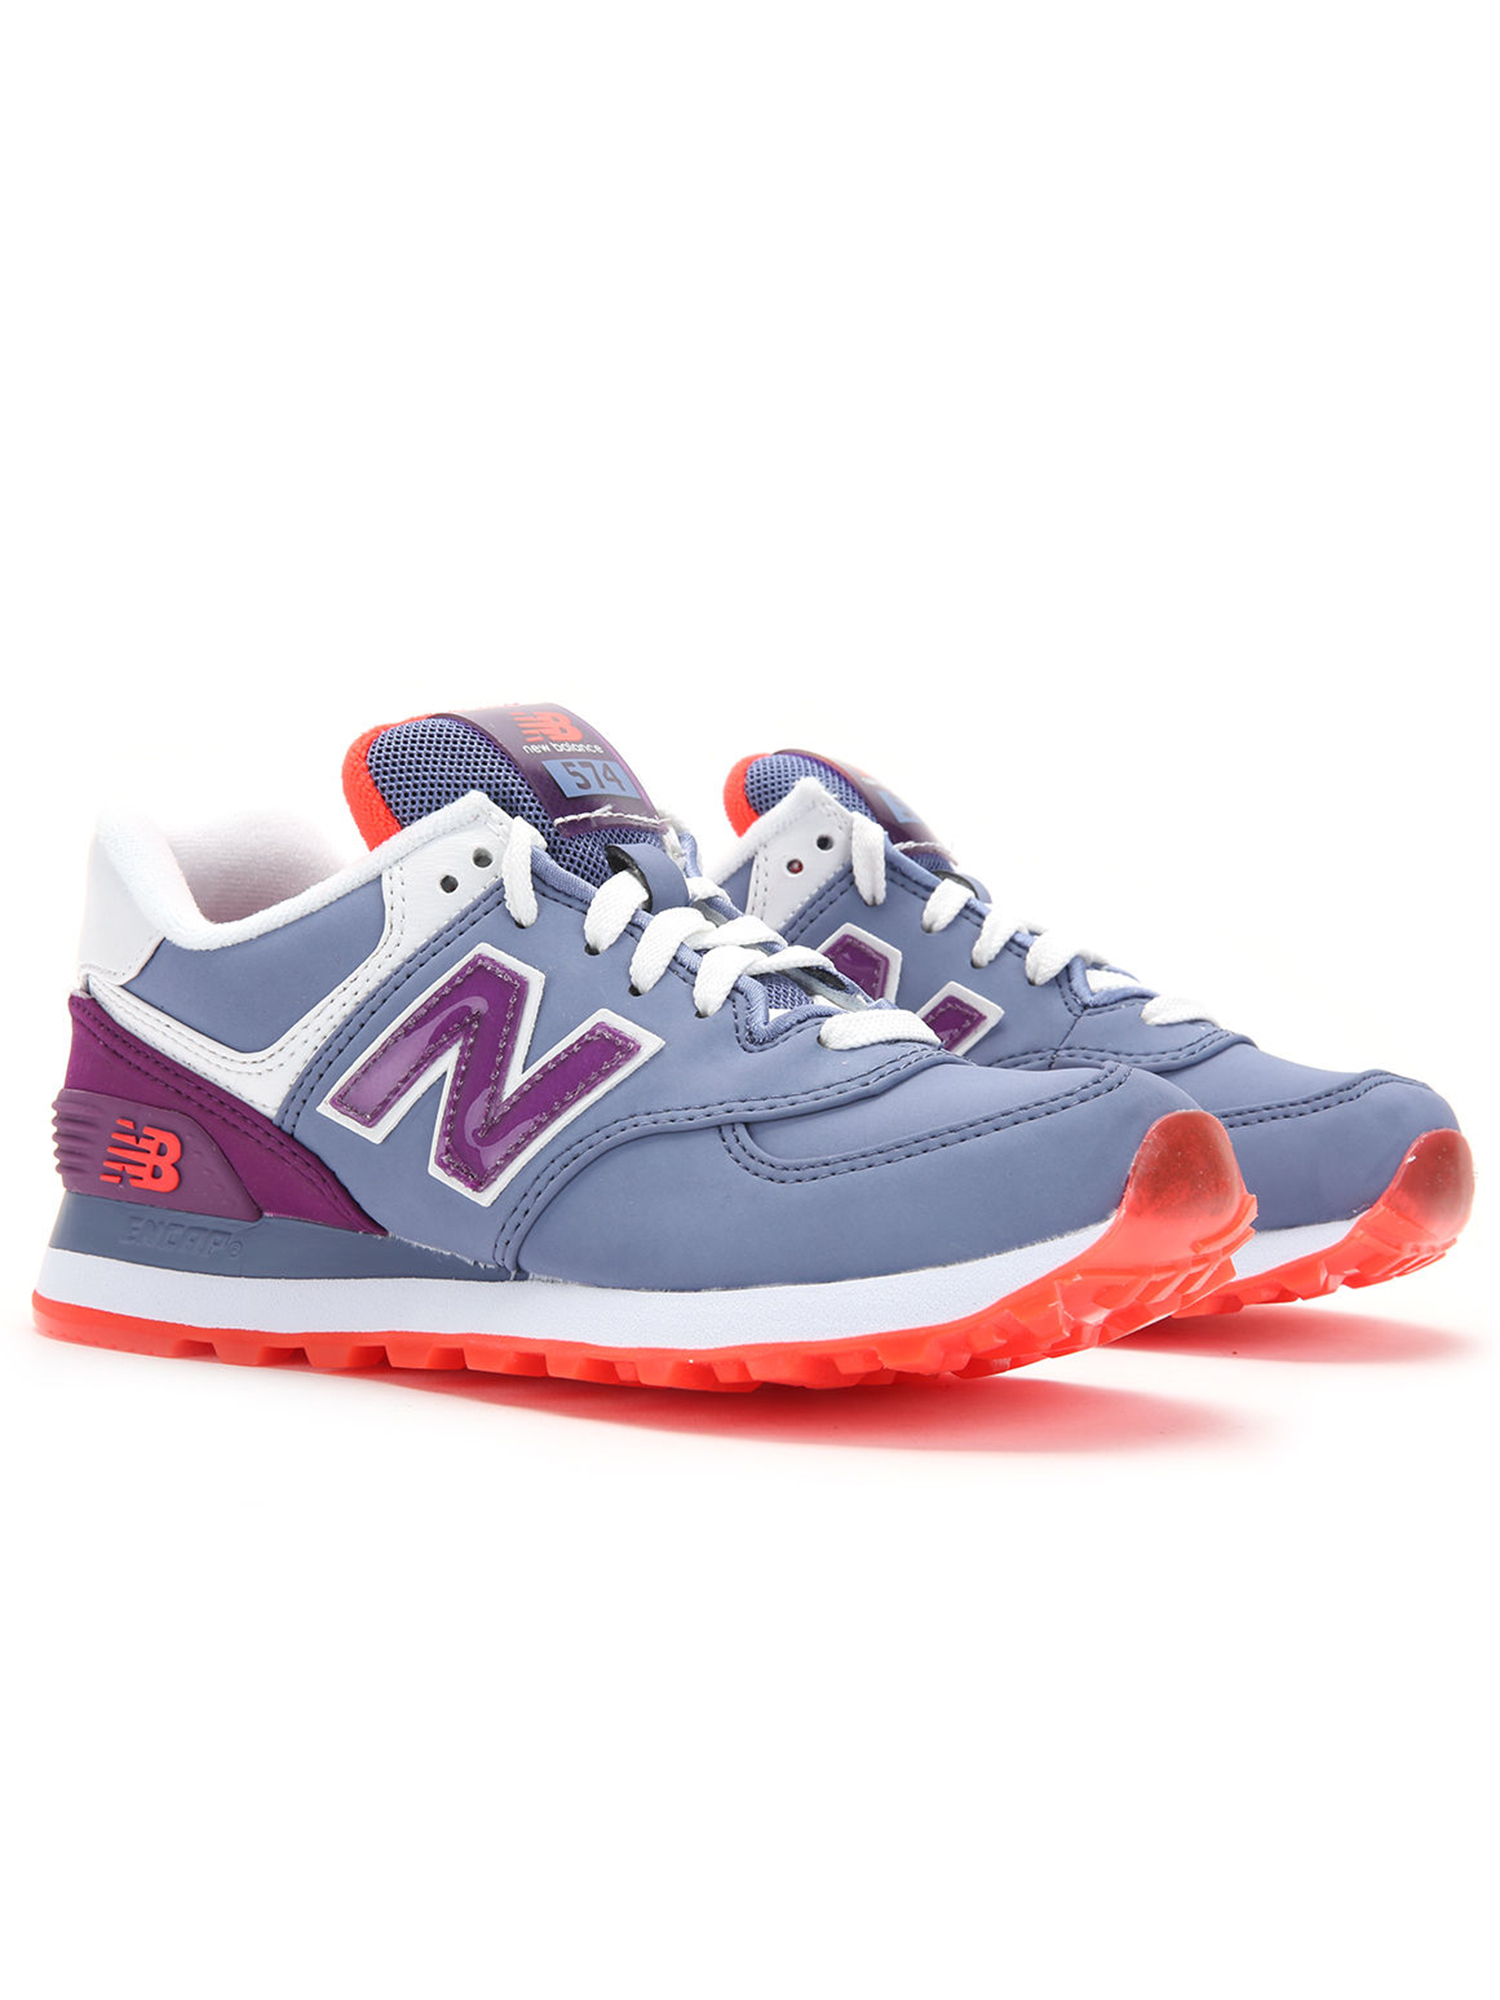 New Balance Women's 574 Glacial Running Shoes WL574SLX Lavender Berry White by